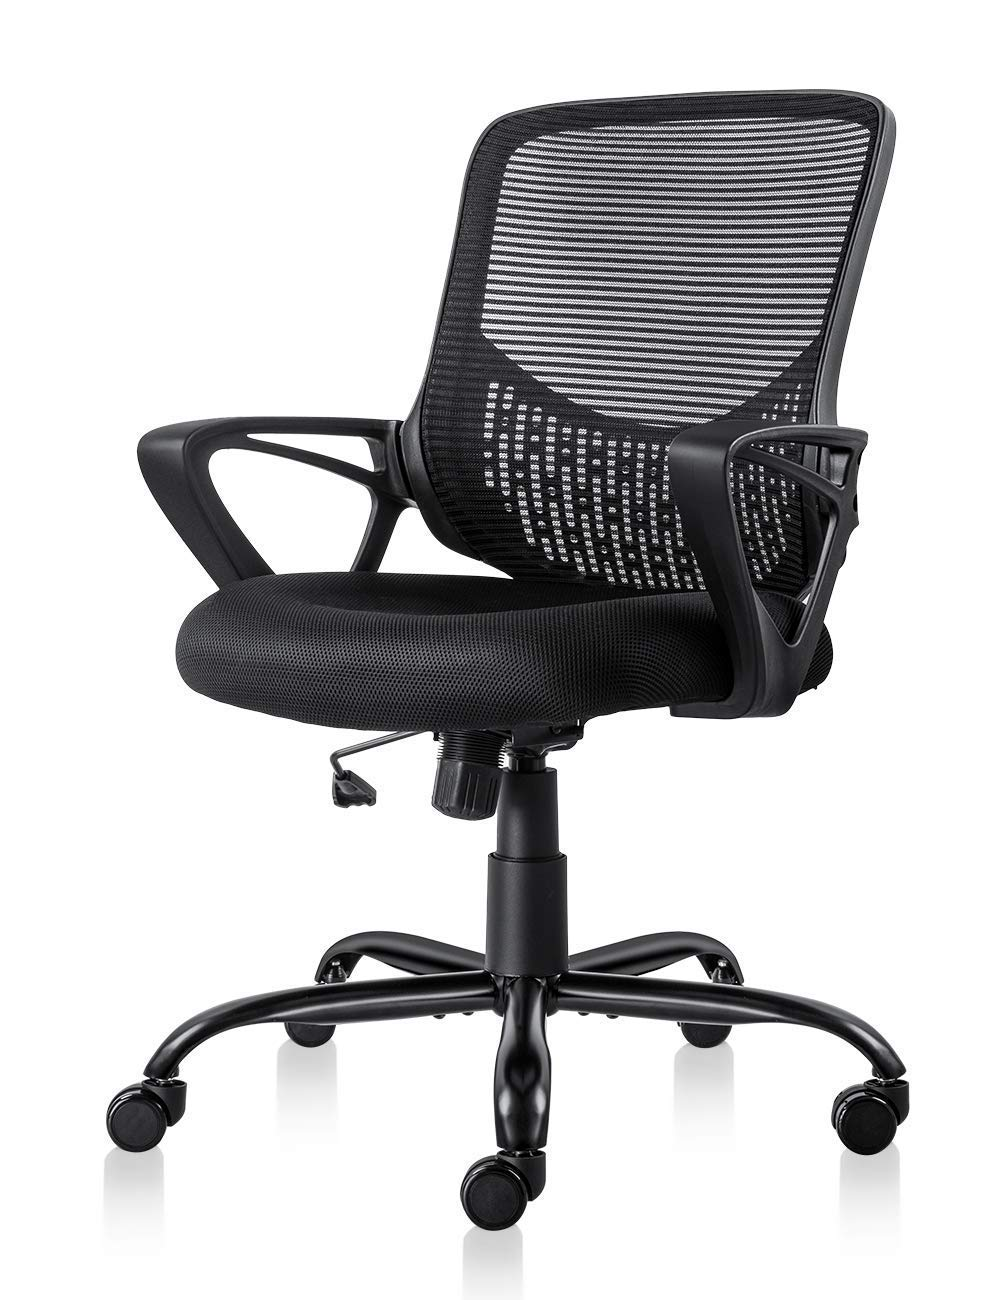 SMUGDESK Ergonomic Office Chair Lumbar Support Mesh Chair Computer Desk Task Chair with Armrests